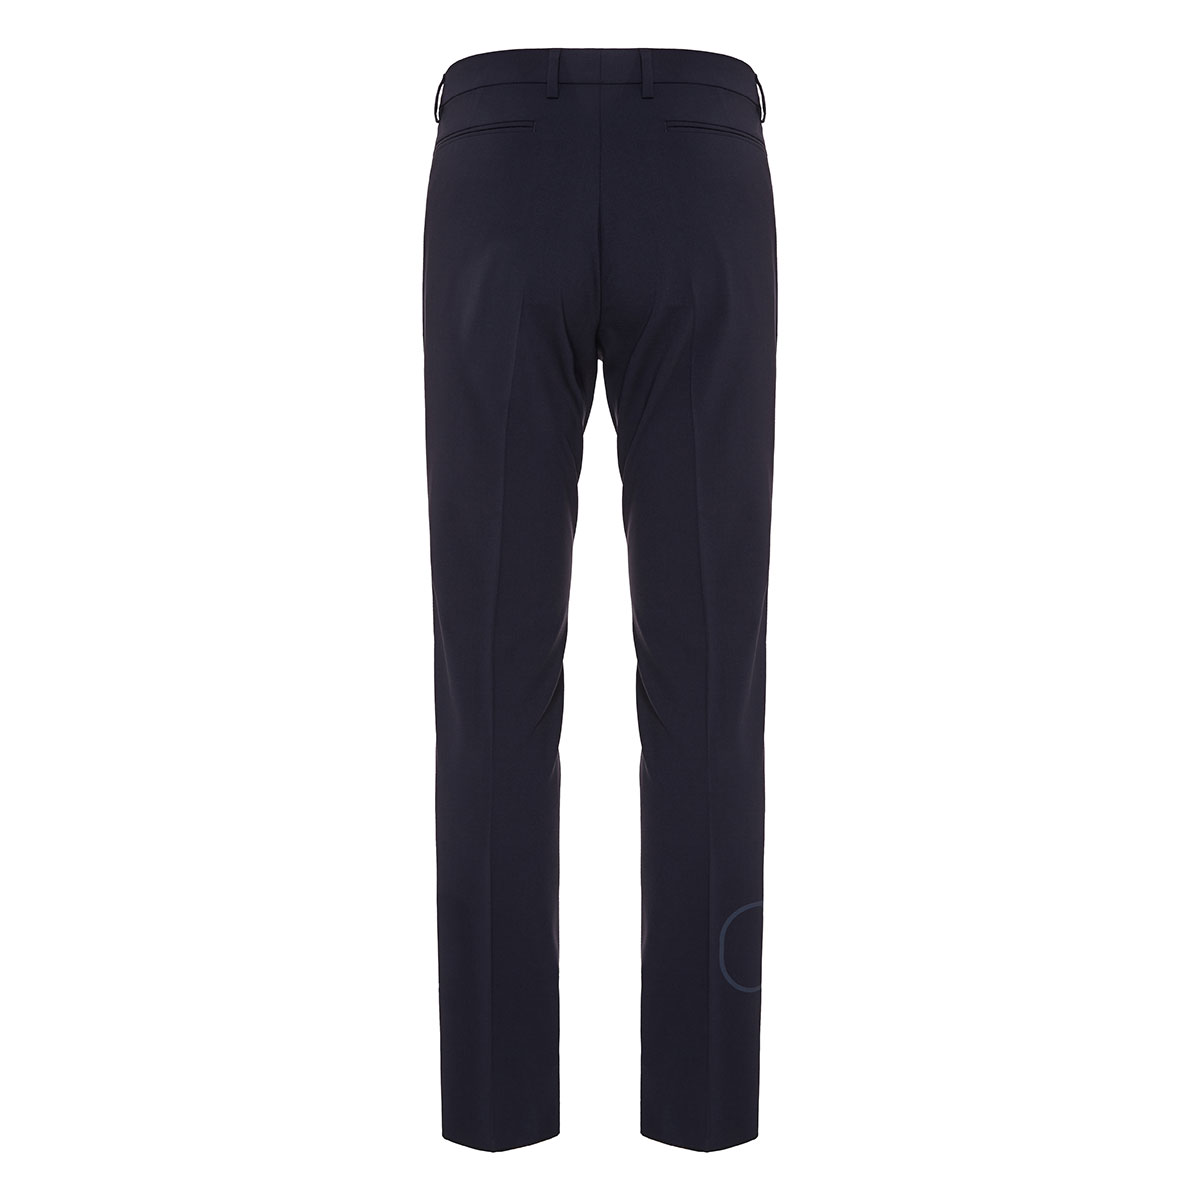 Vlogo tailored trousers